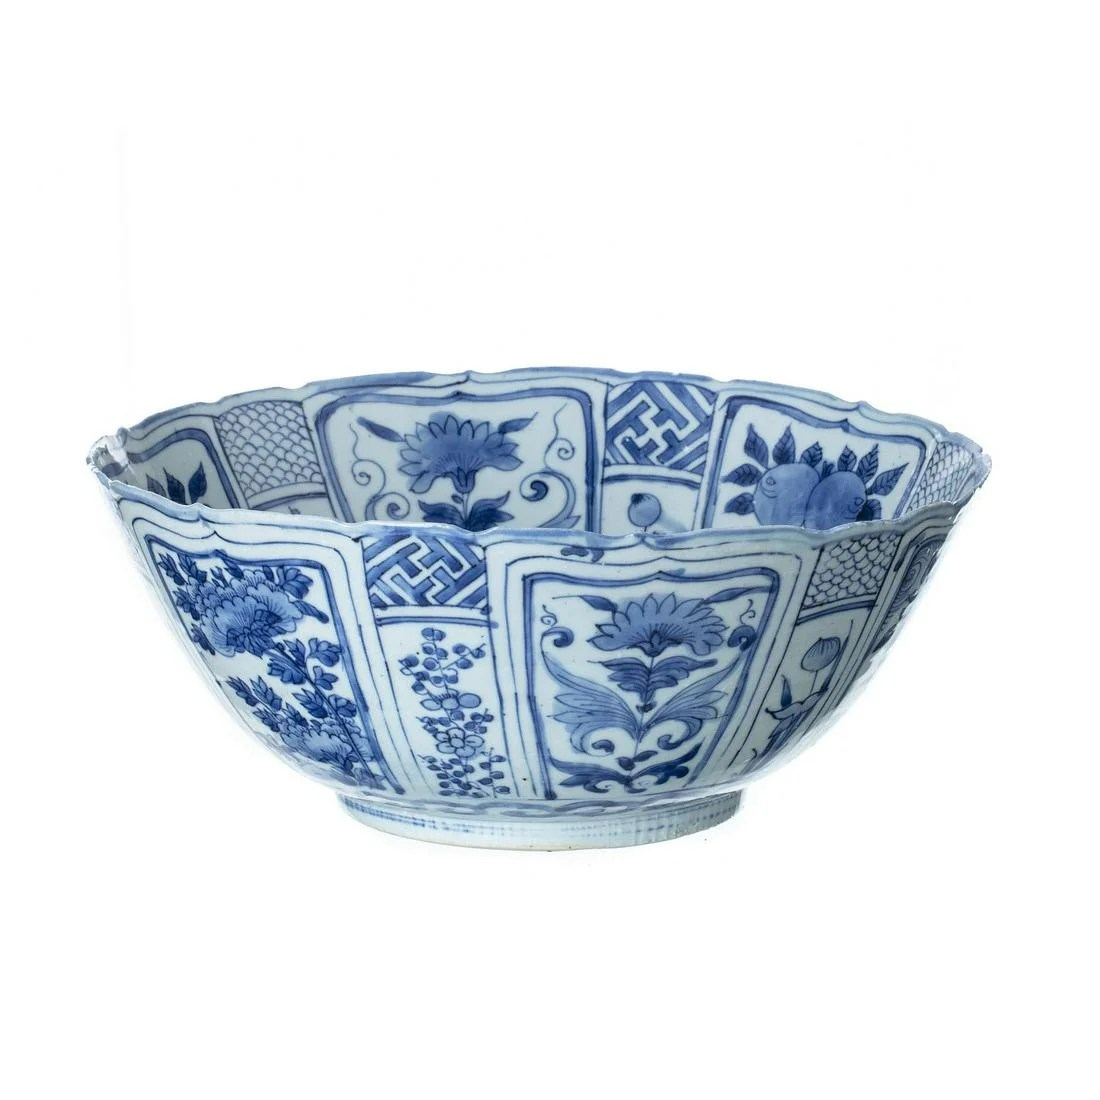 Chinese porcelain punch bowl, Ming